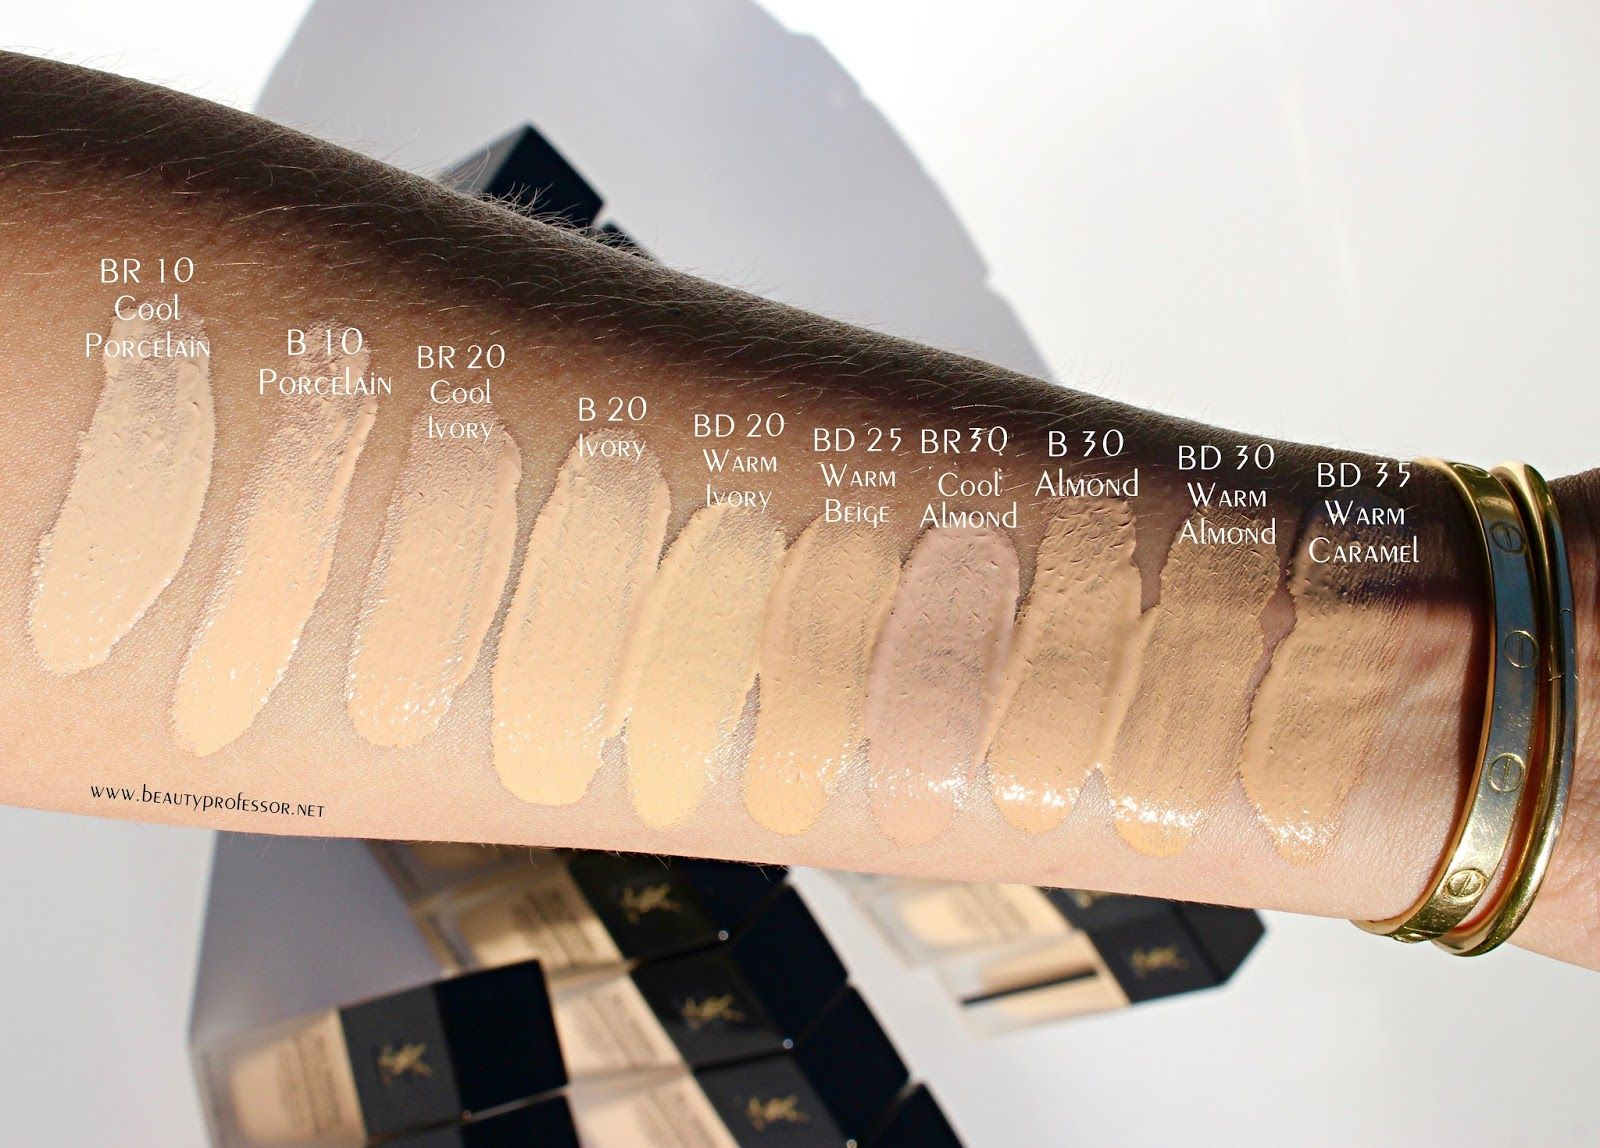 2 Major Things A Glimpse At The Beauty Professor X Lmdb Lip Color Process A First Look At The Ysl All Hours Foundation Foundation Swatches Ysl Foundation Ysl Makeup Foundation